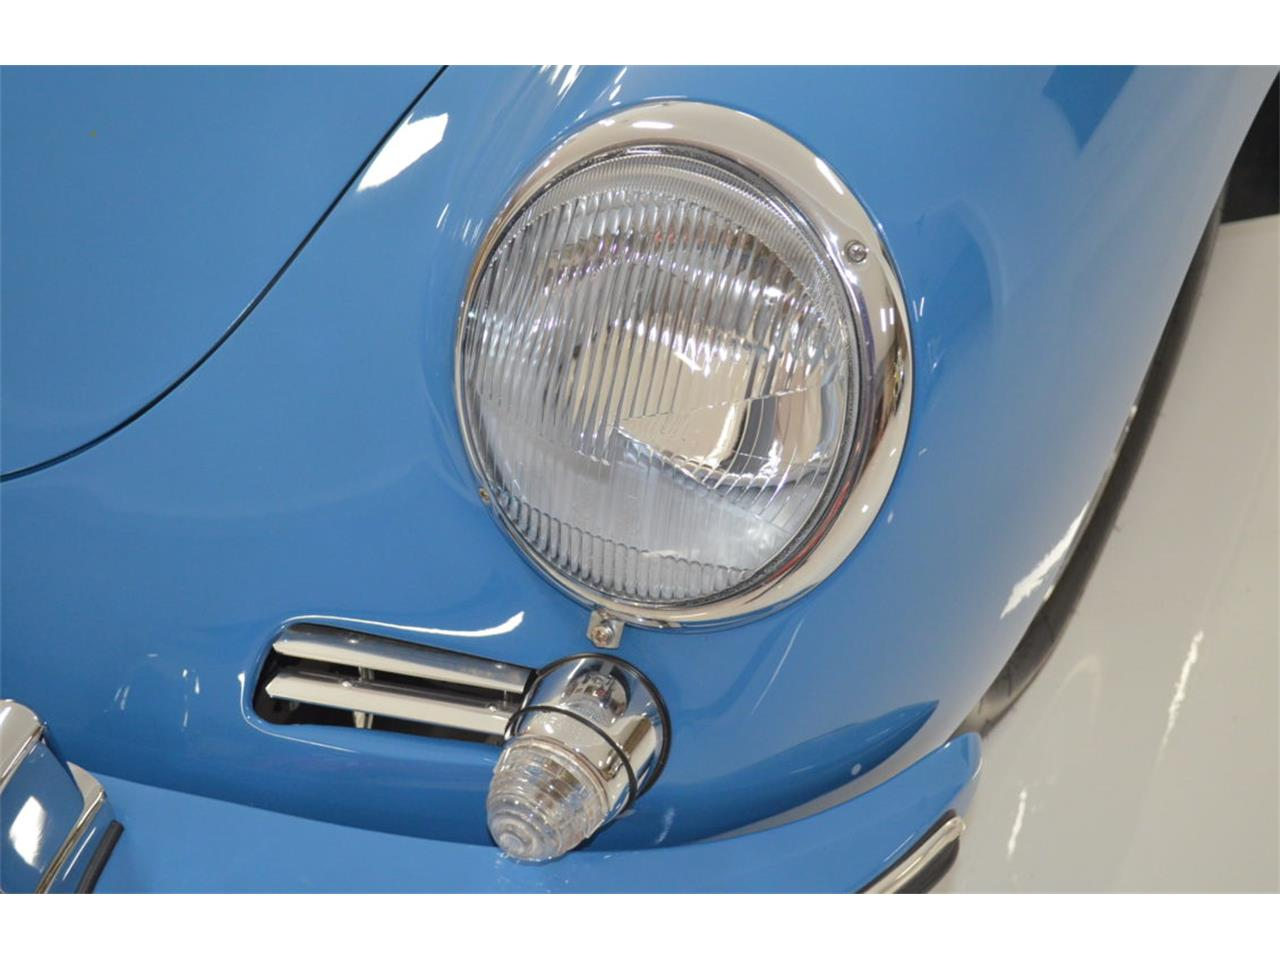 Large Picture of Classic '64 Porsche 356 located in Phoenix Arizona - $189,800.00 Offered by Classic Promenade - PZL1